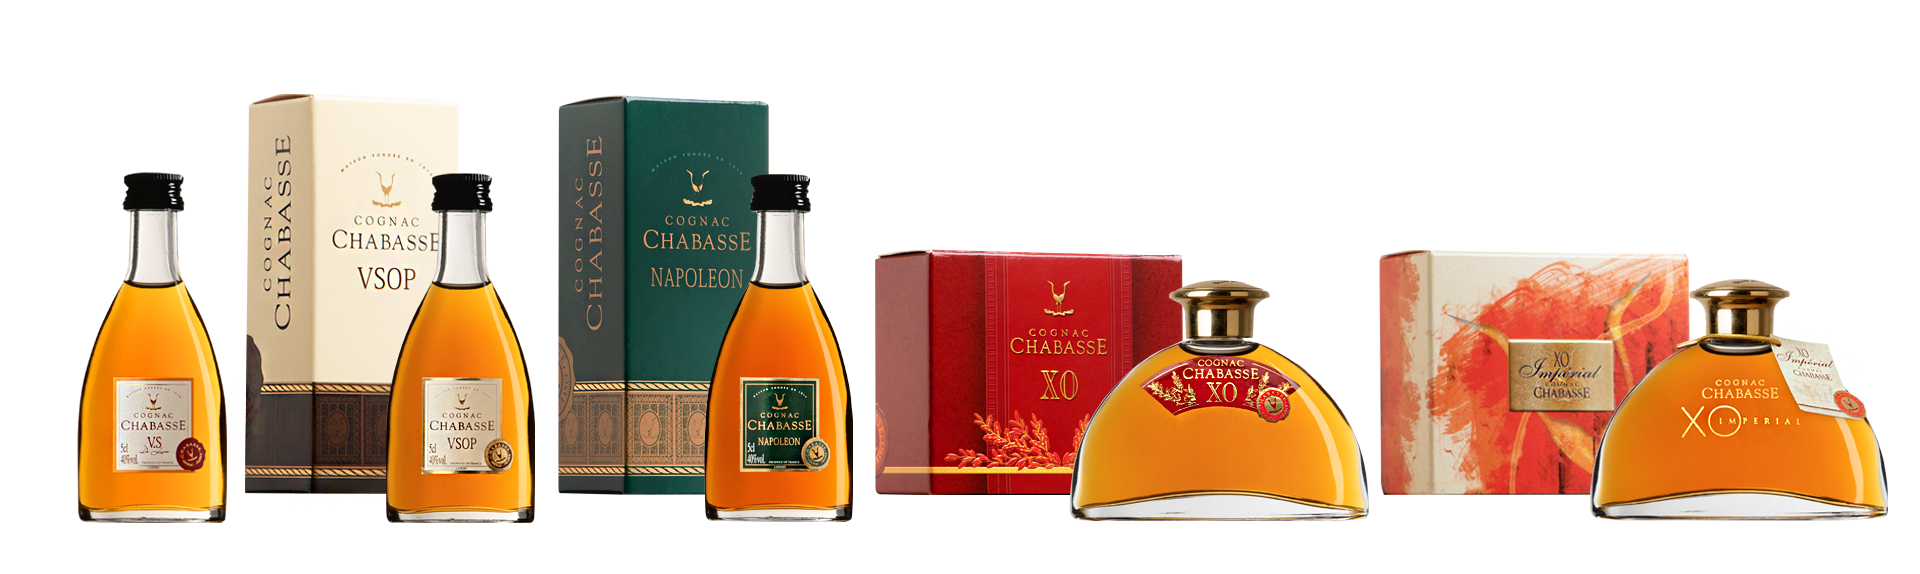 miniatures chabasse